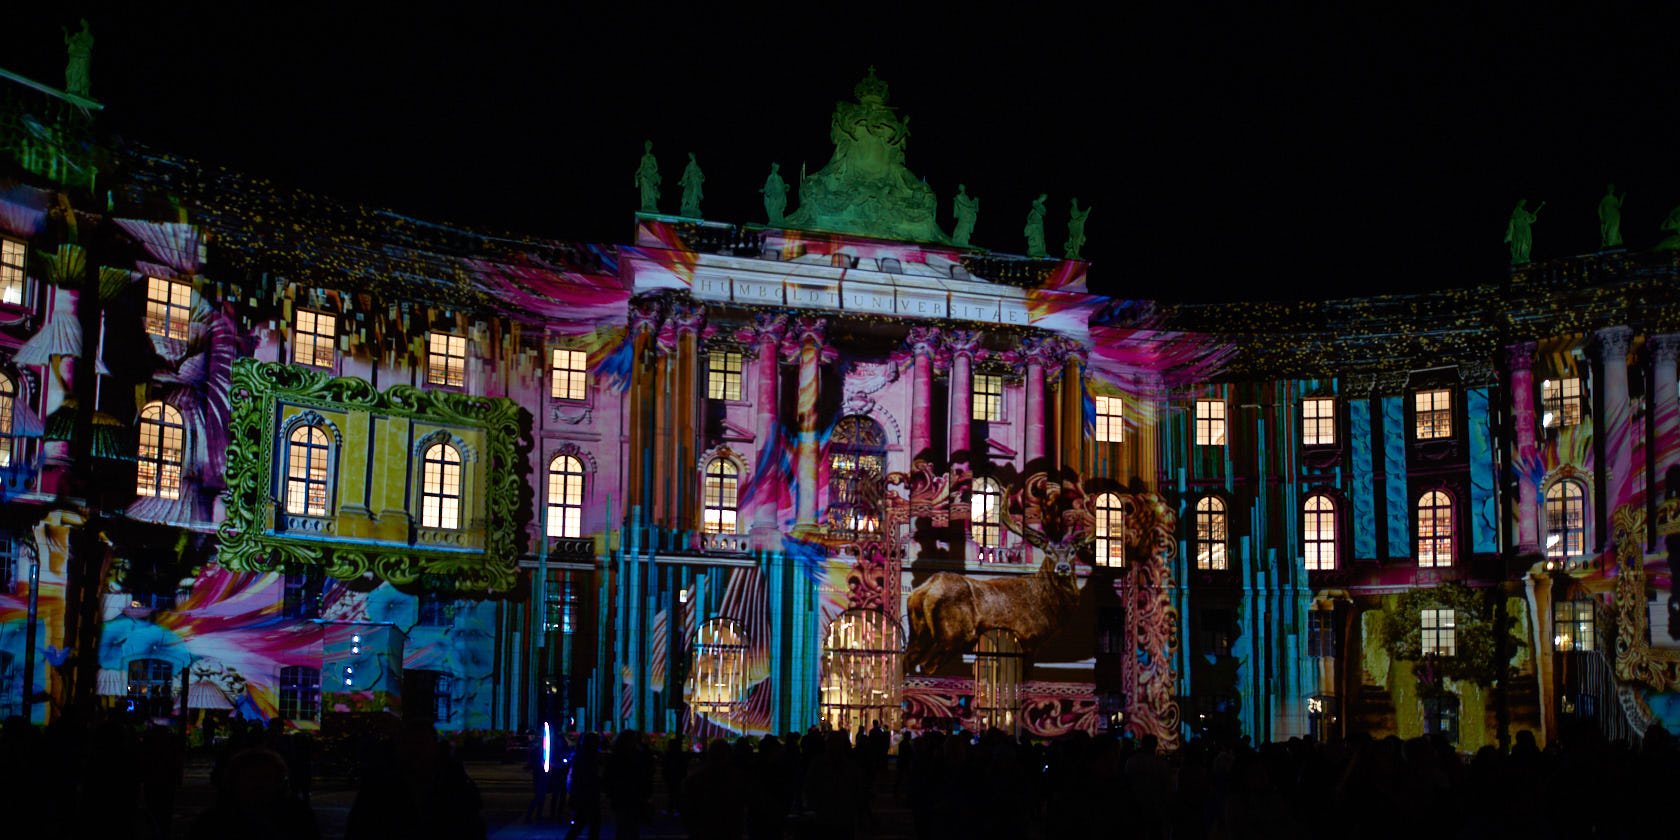 Festival Of Lights 2017 in Berlin 2